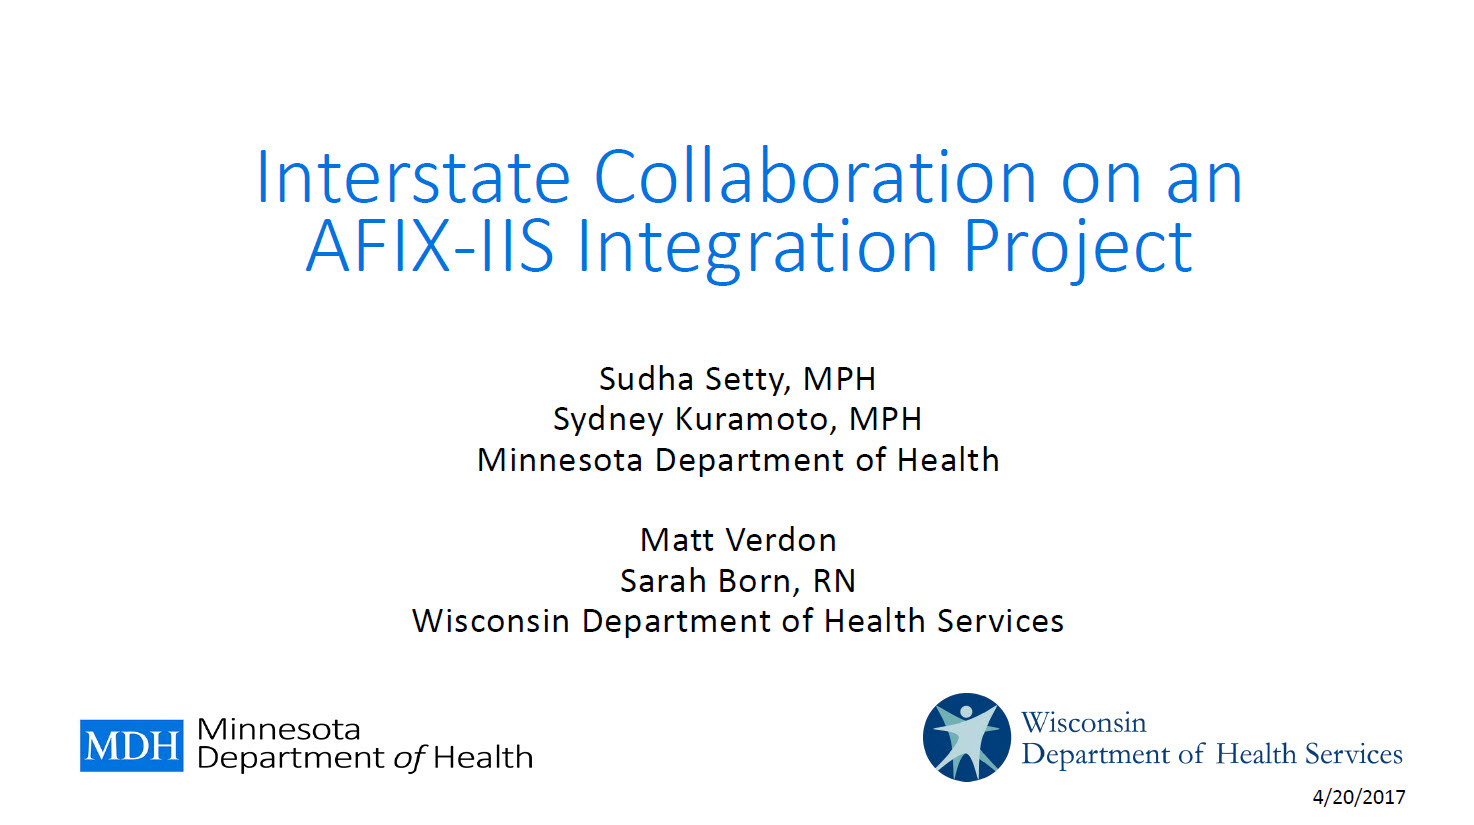 Interstate Collaboration on an AFIX-IIS Integration Project